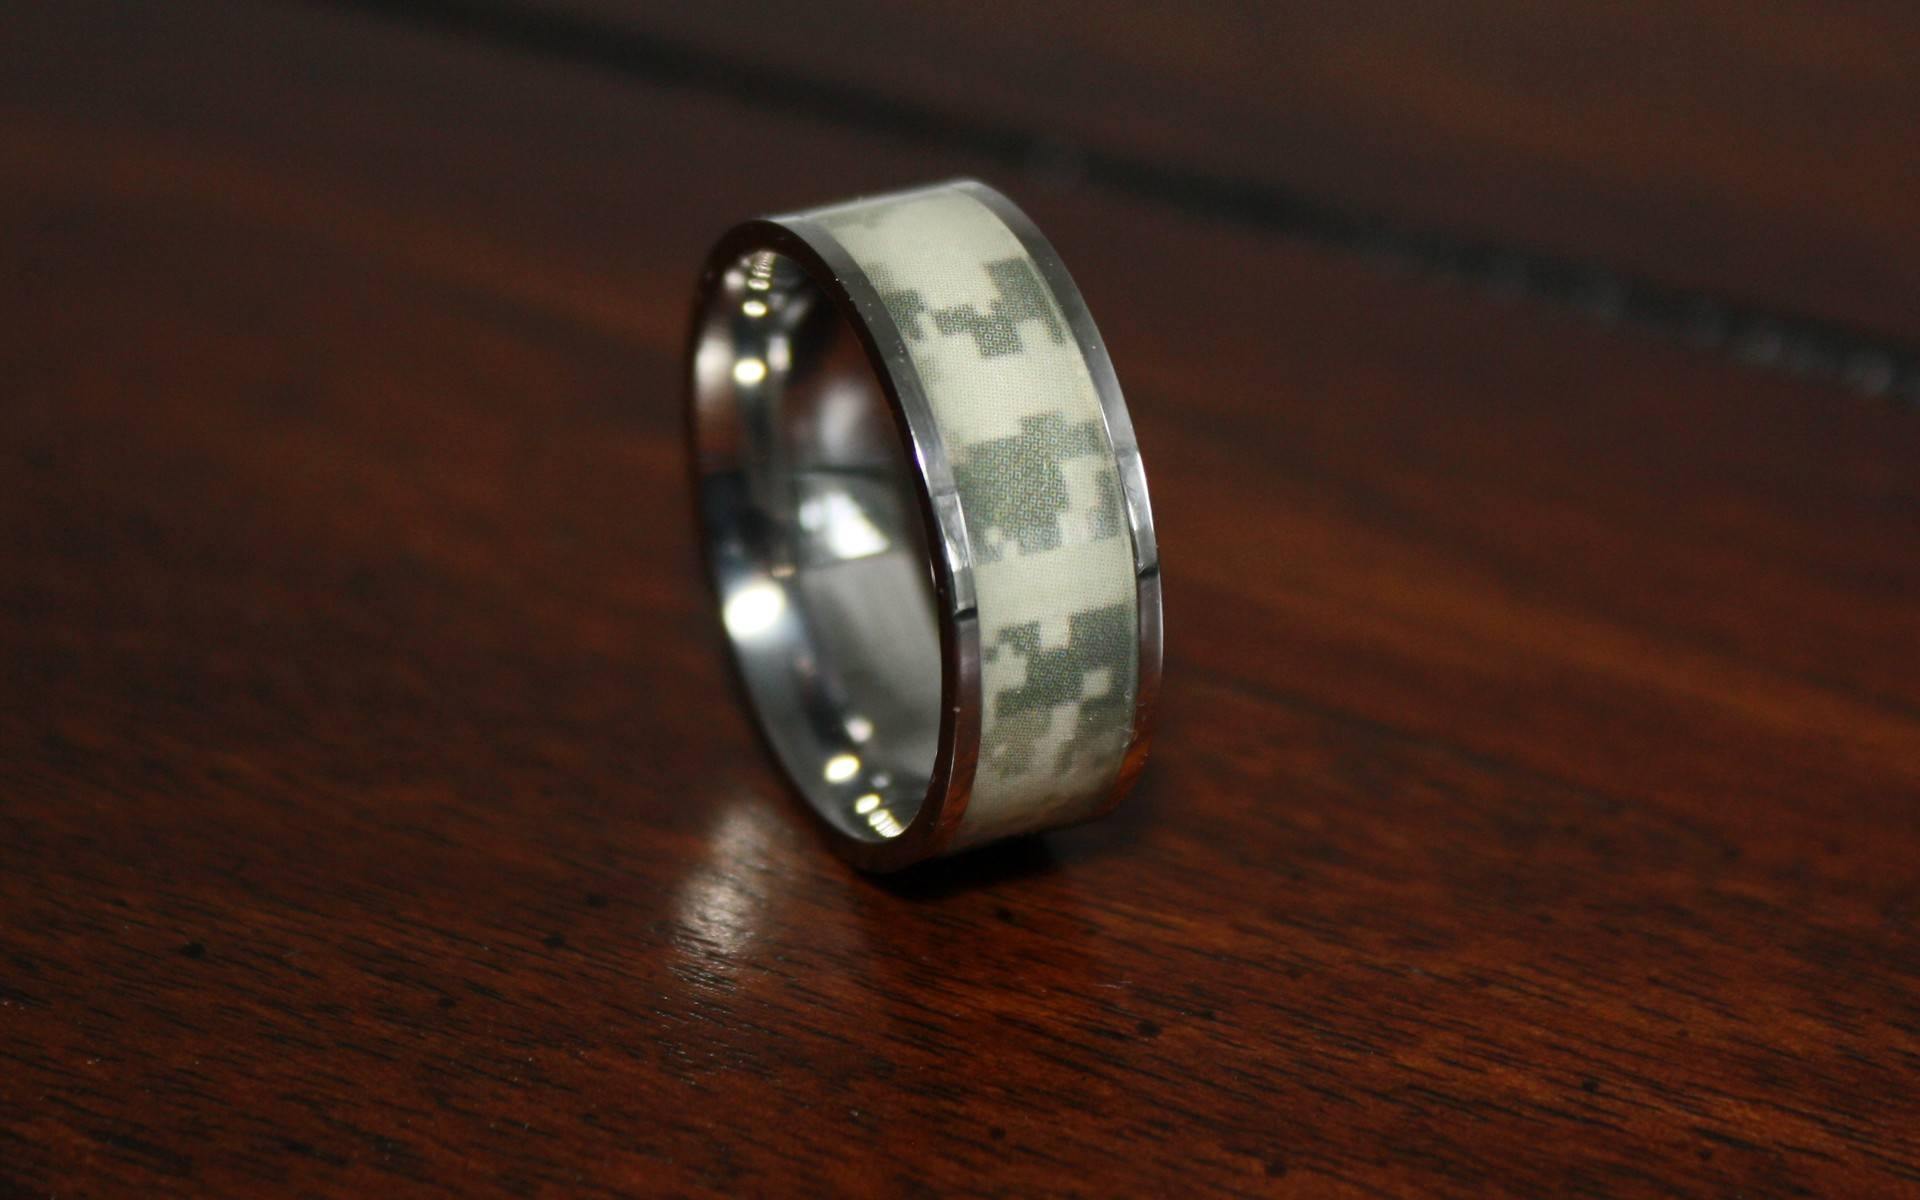 Decorative Duck Hunting Wedding Band Halloween Ideas Duck Blind Intended For Duck Hunting Wedding Bands (View 12 of 15)